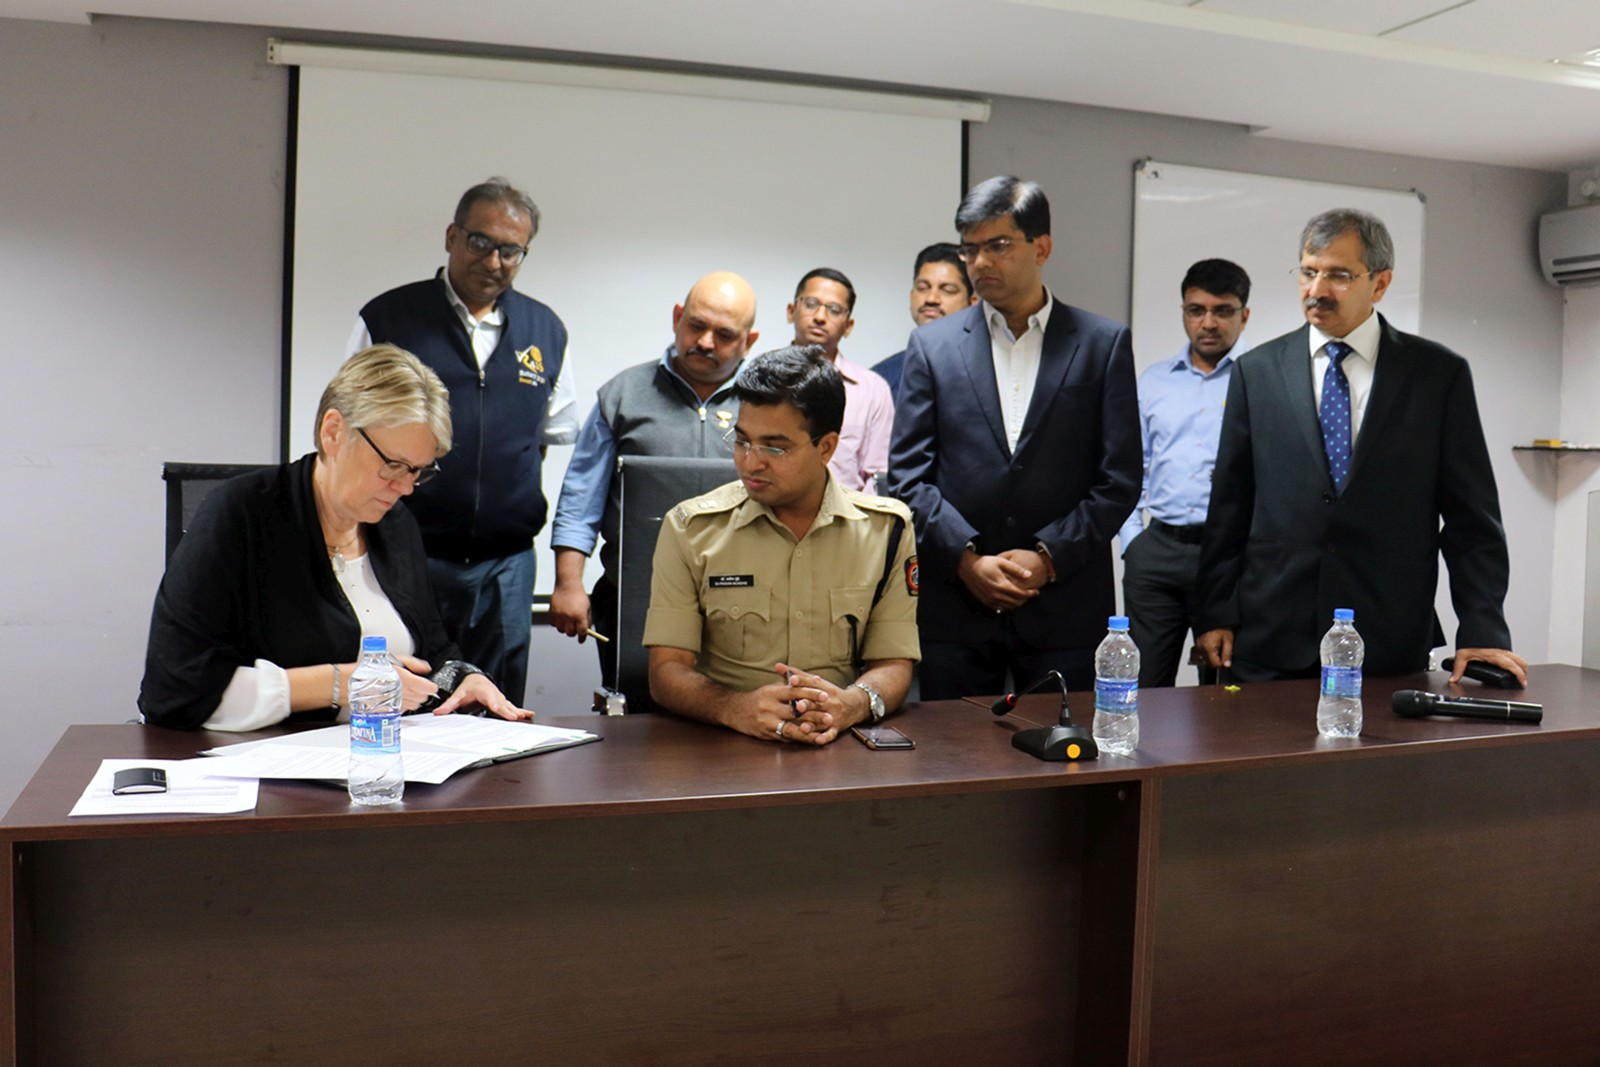 Volkswagen-India-Centralized-Traffic-Control-Centre-Pune-Police-Headquarters-2